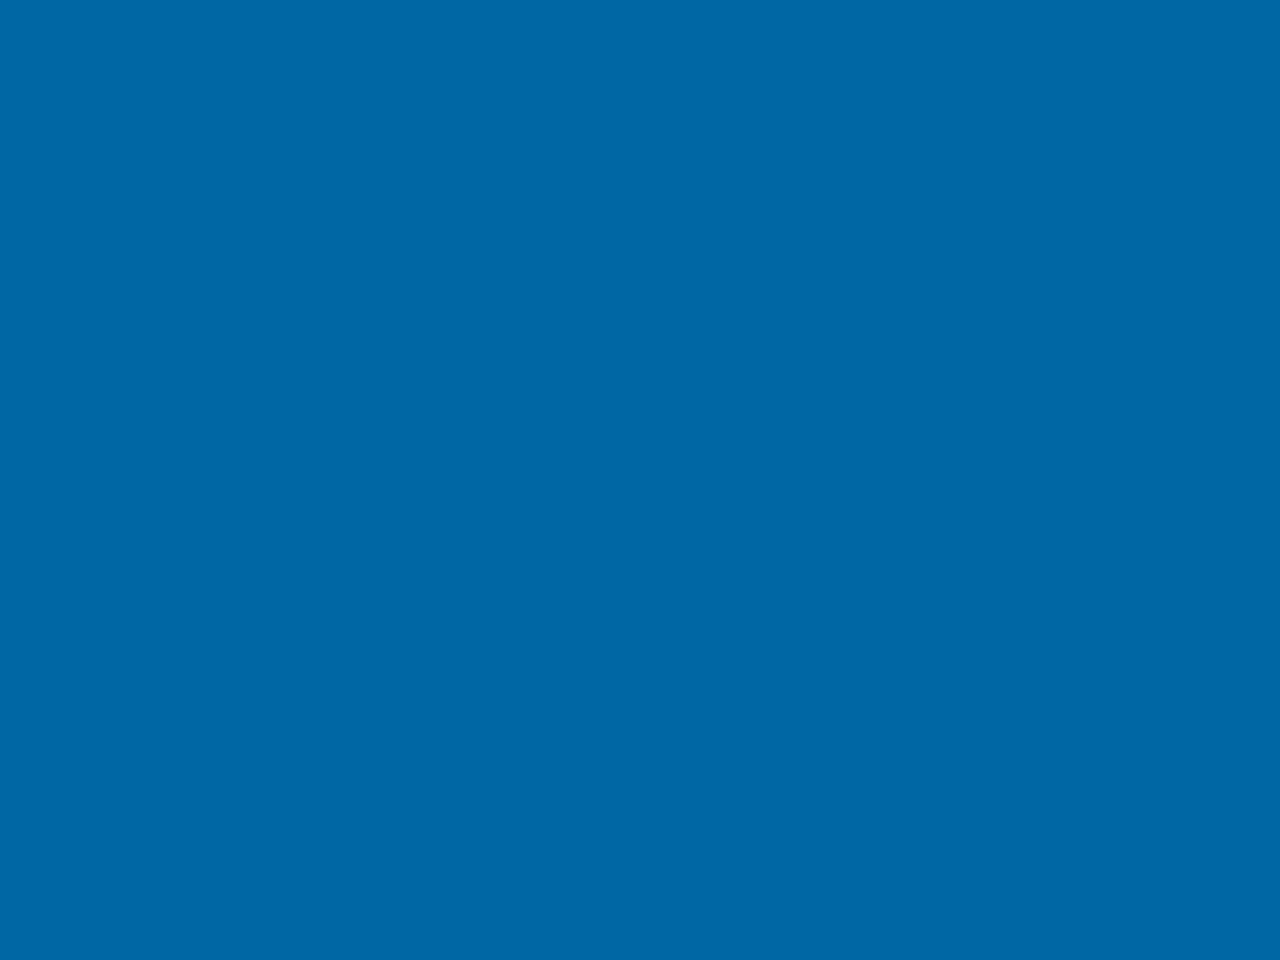 1280x960 Sapphire Blue Solid Color Background